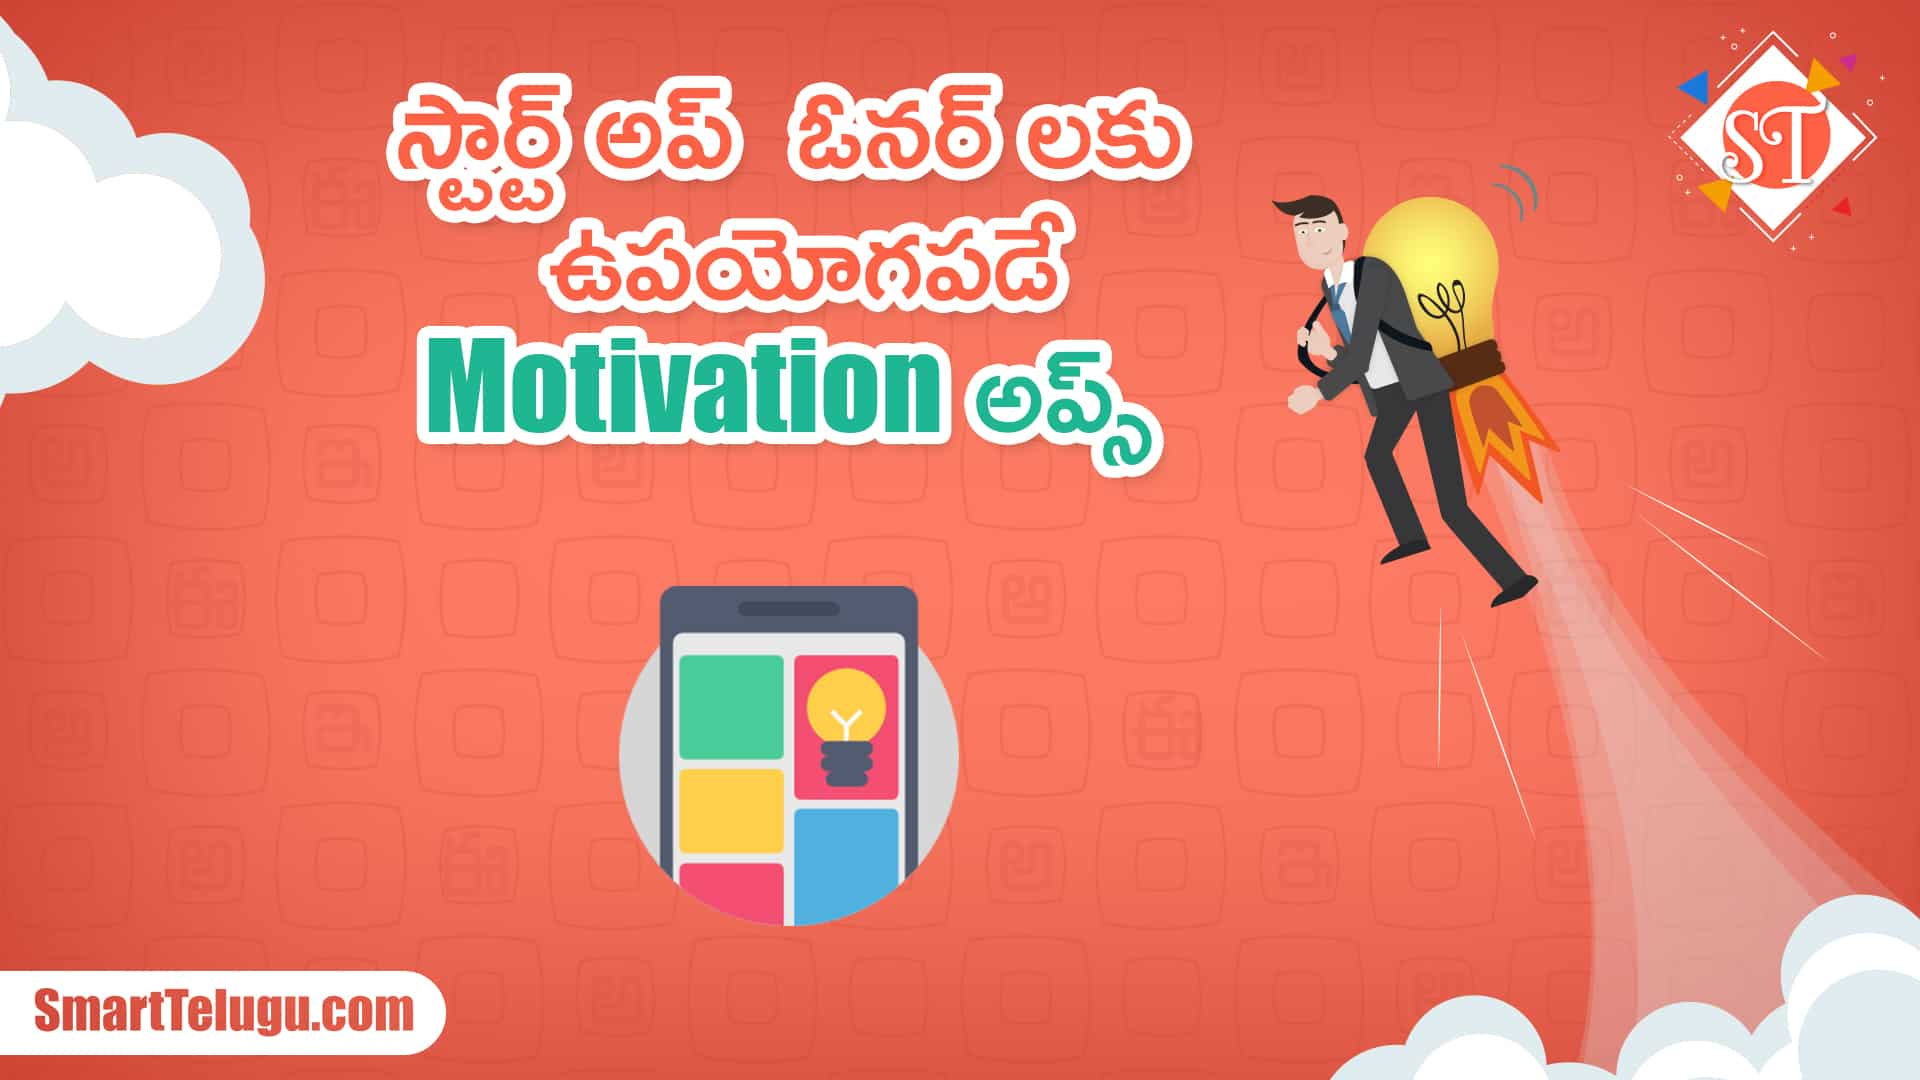 Motivation ups for start up owners